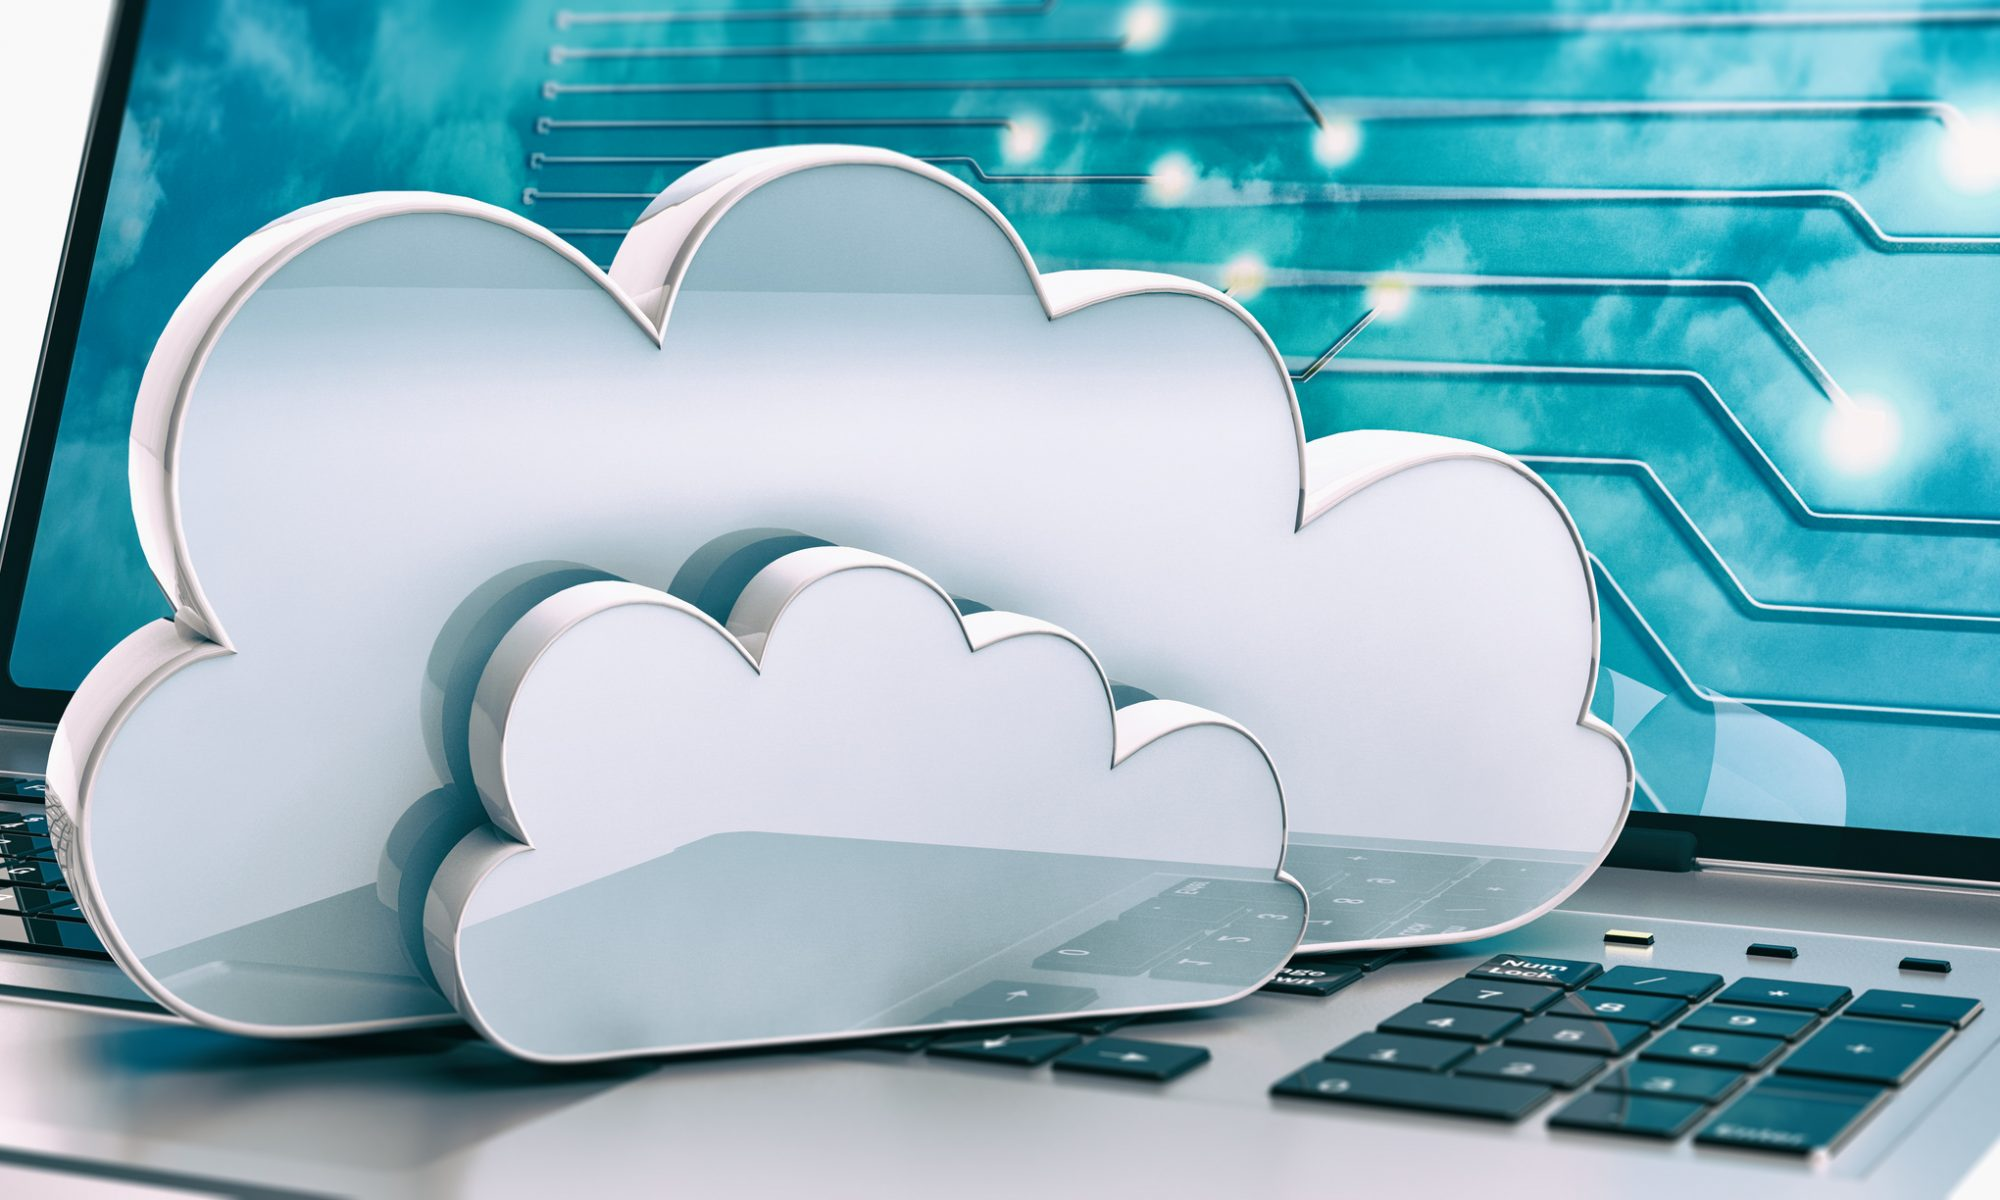 Benefits of backing up to the cloud versus tape